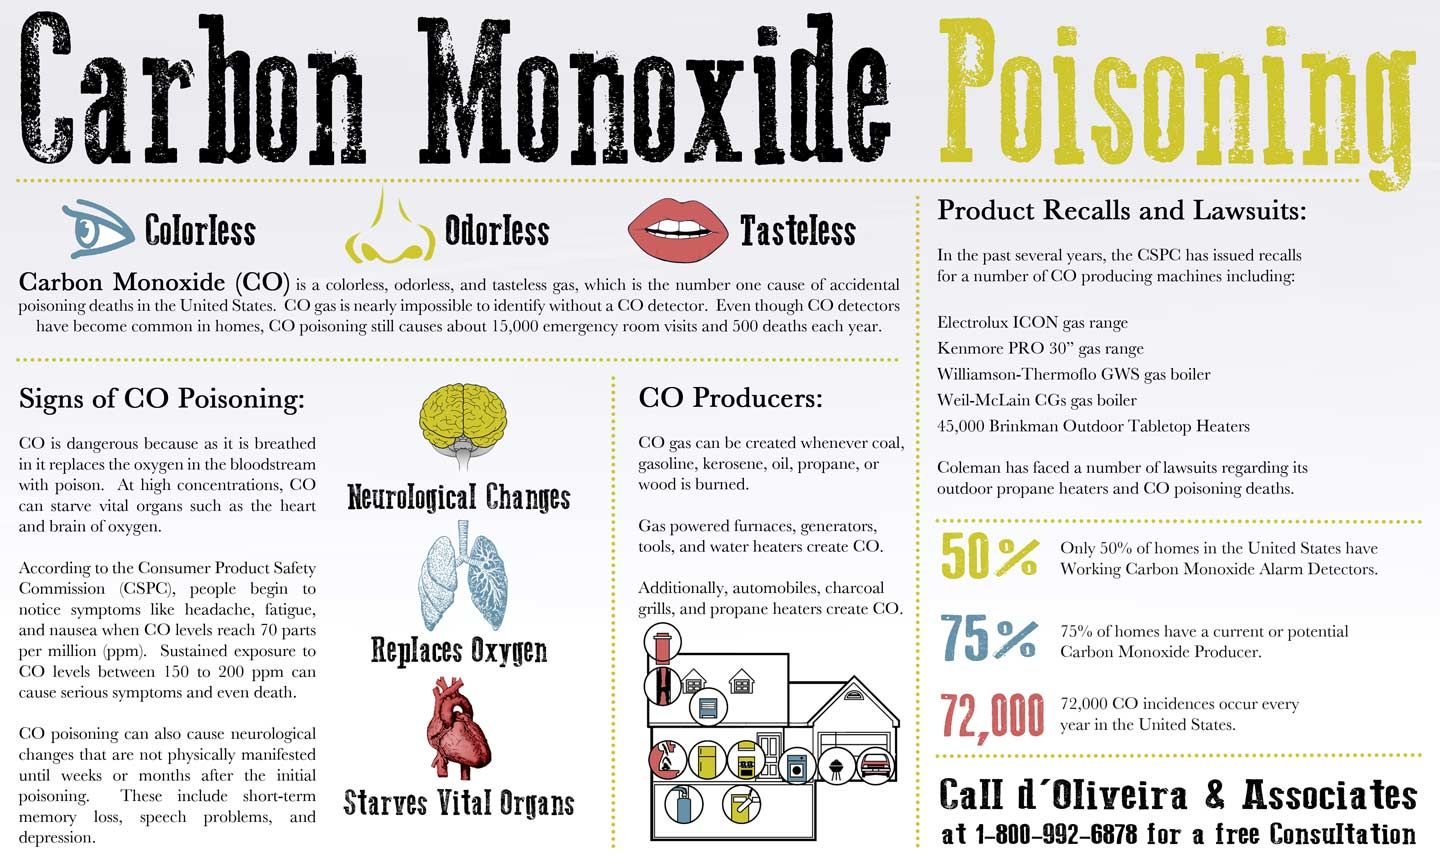 Carbon Monoxide Poisoning Infographic The Colorless